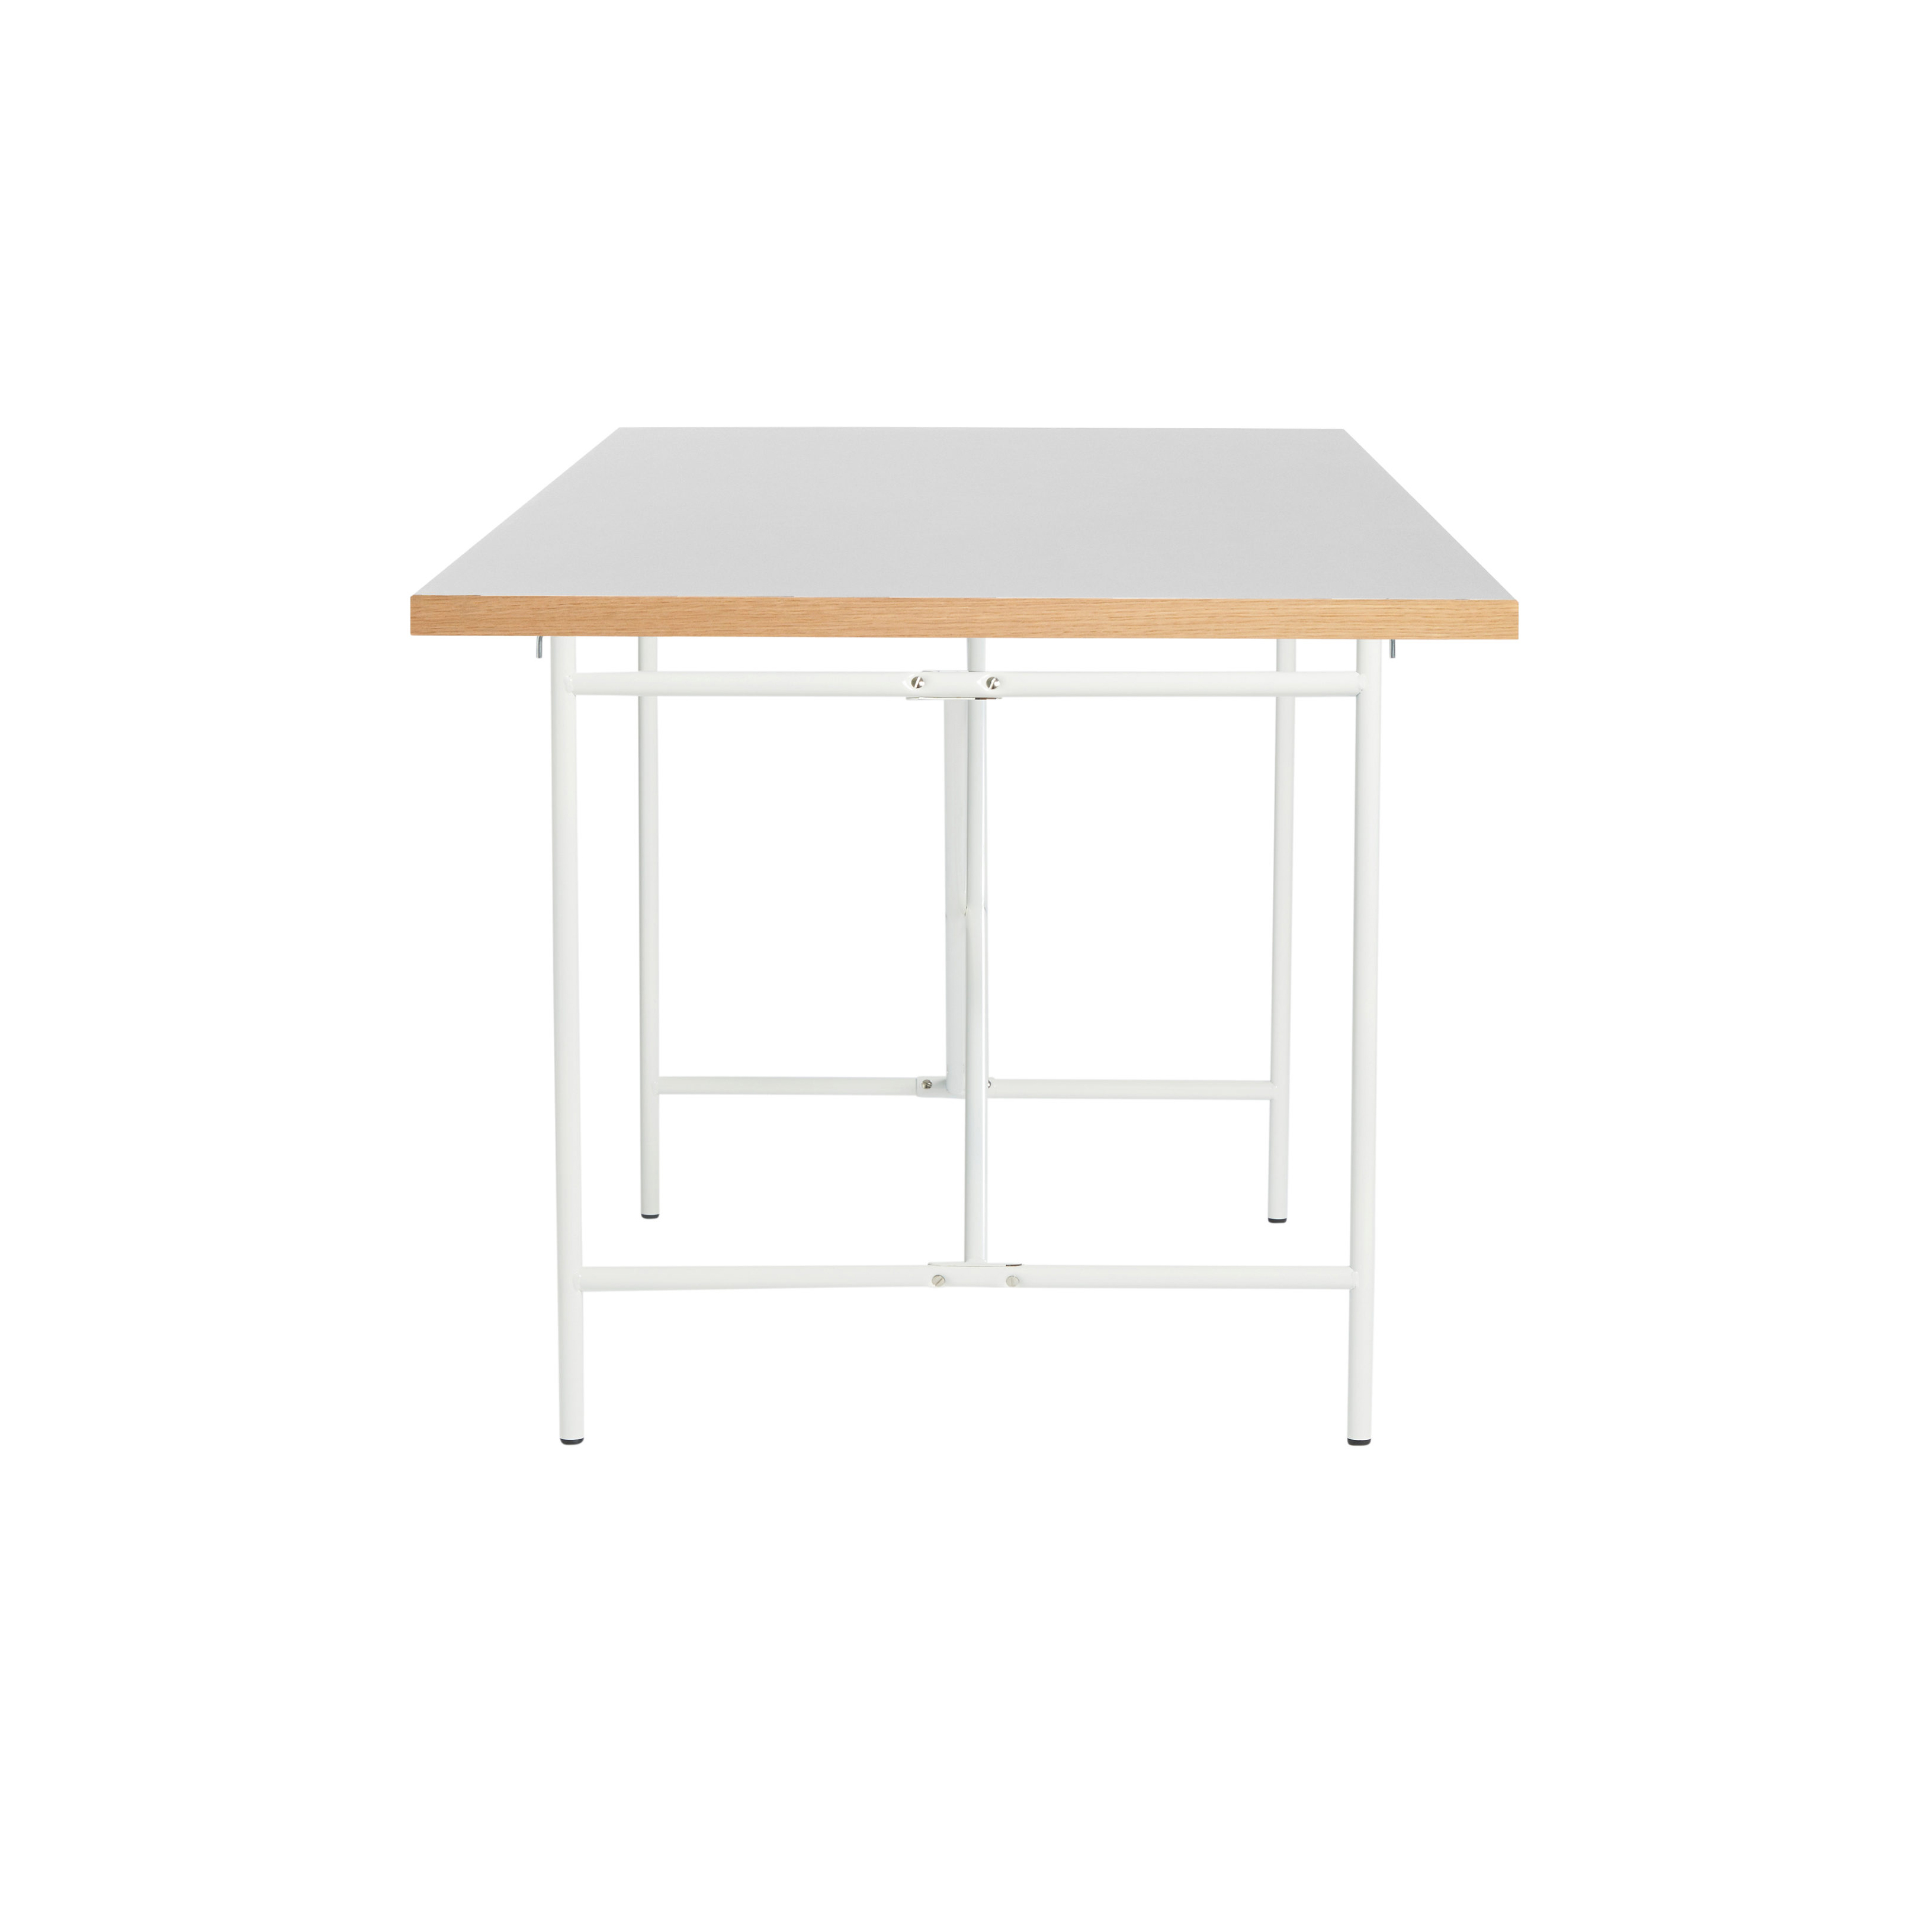 Eiermann 2 Dining Table 160 x 80